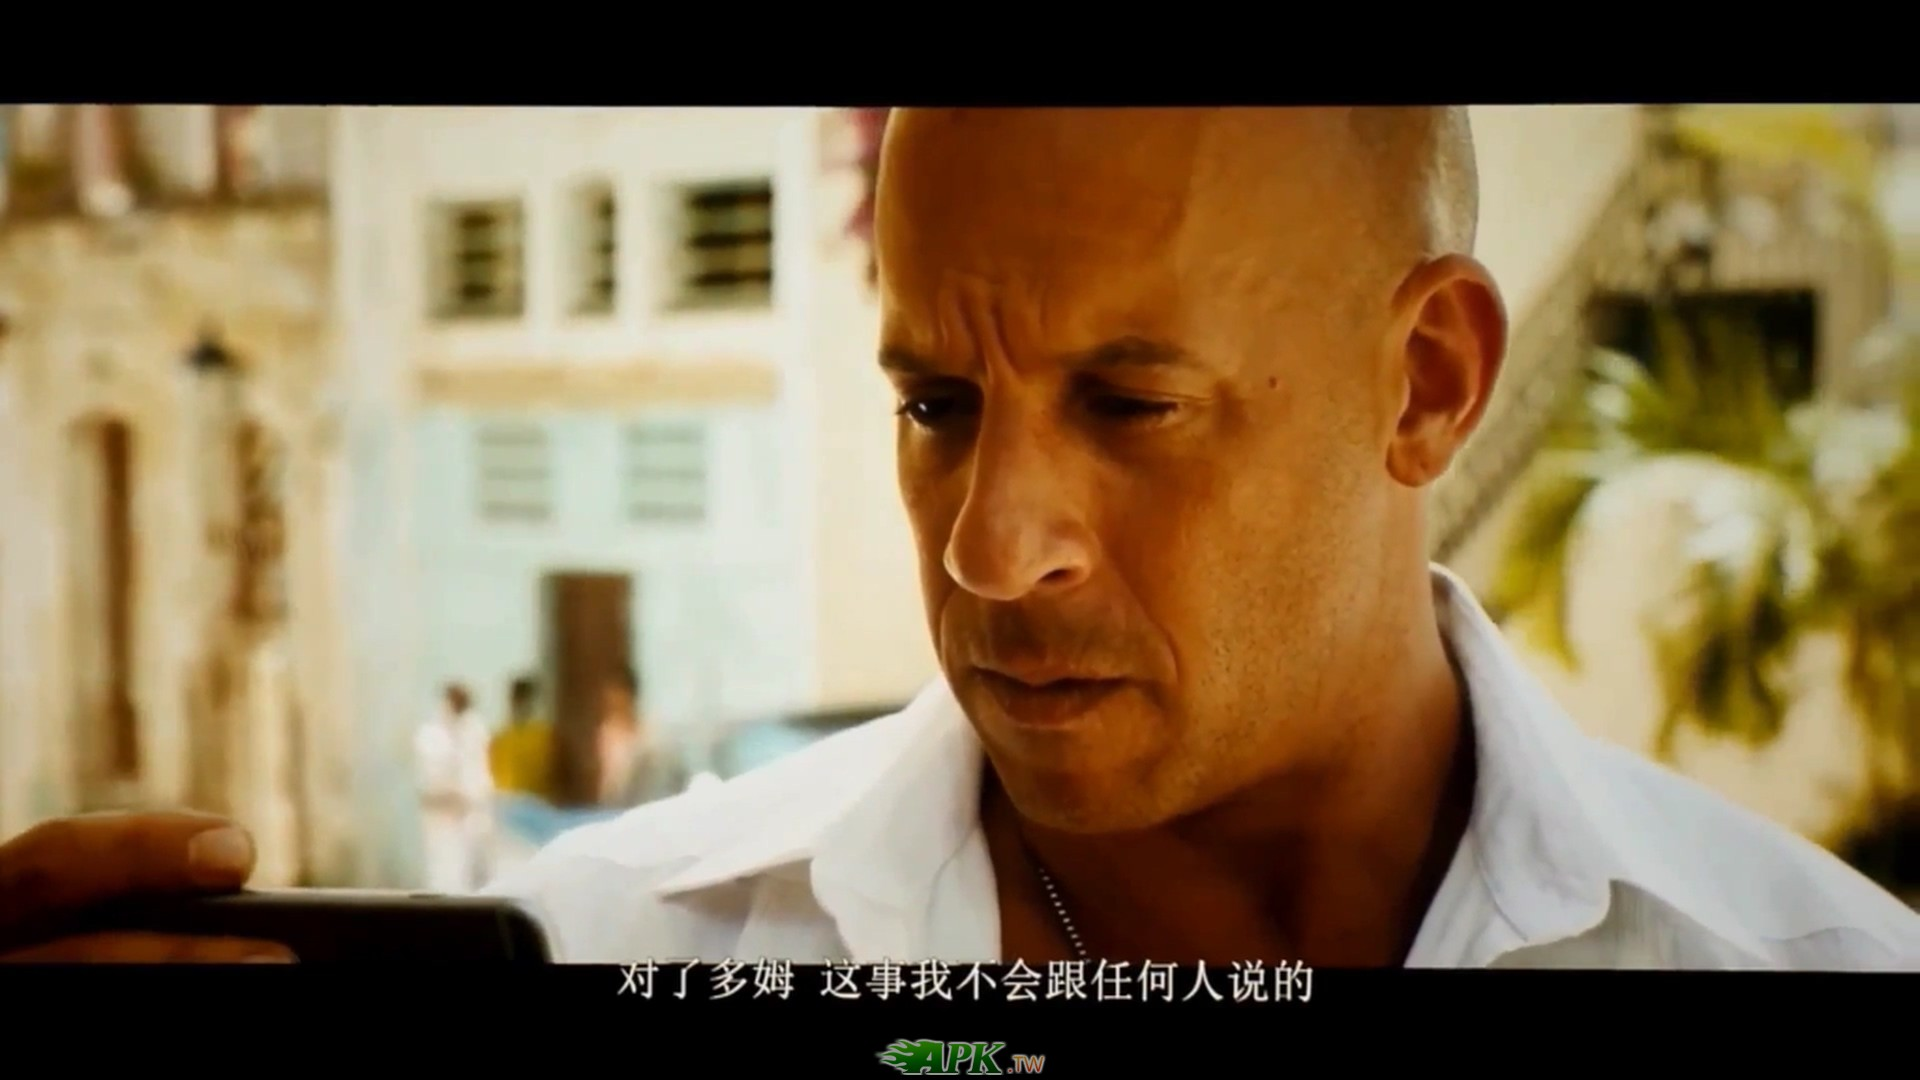 [WEBHD]速度与激情8 The.Fate.of.the.Furious.2017.1080P.HDRip.H264.AAC-JBY.mkv_201.jpg